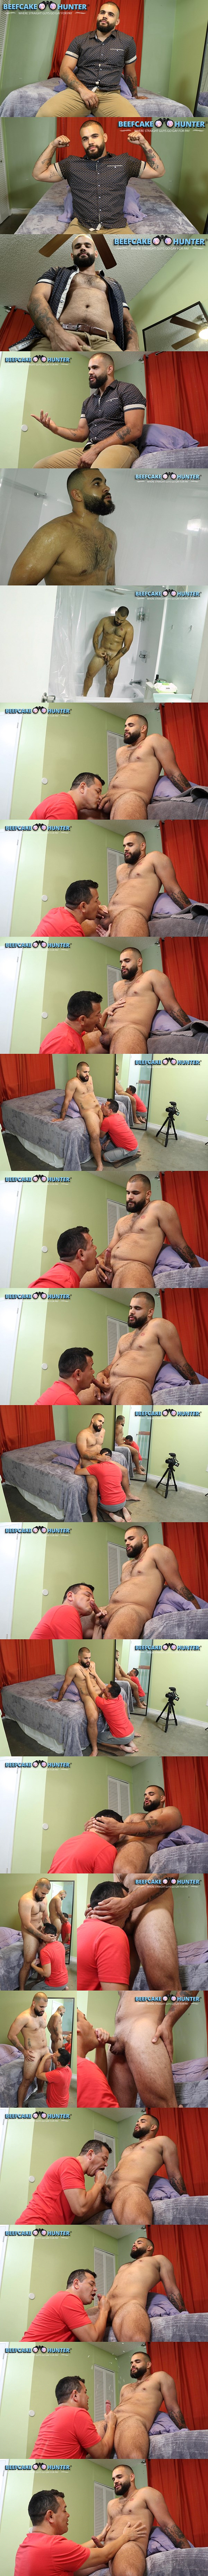 Beefcakehunter - Victor deep-throats beefy, masculine straight muscle hunk Gabriel's cock before he strokes a big creamy load out of Gabriel's hard pole 02